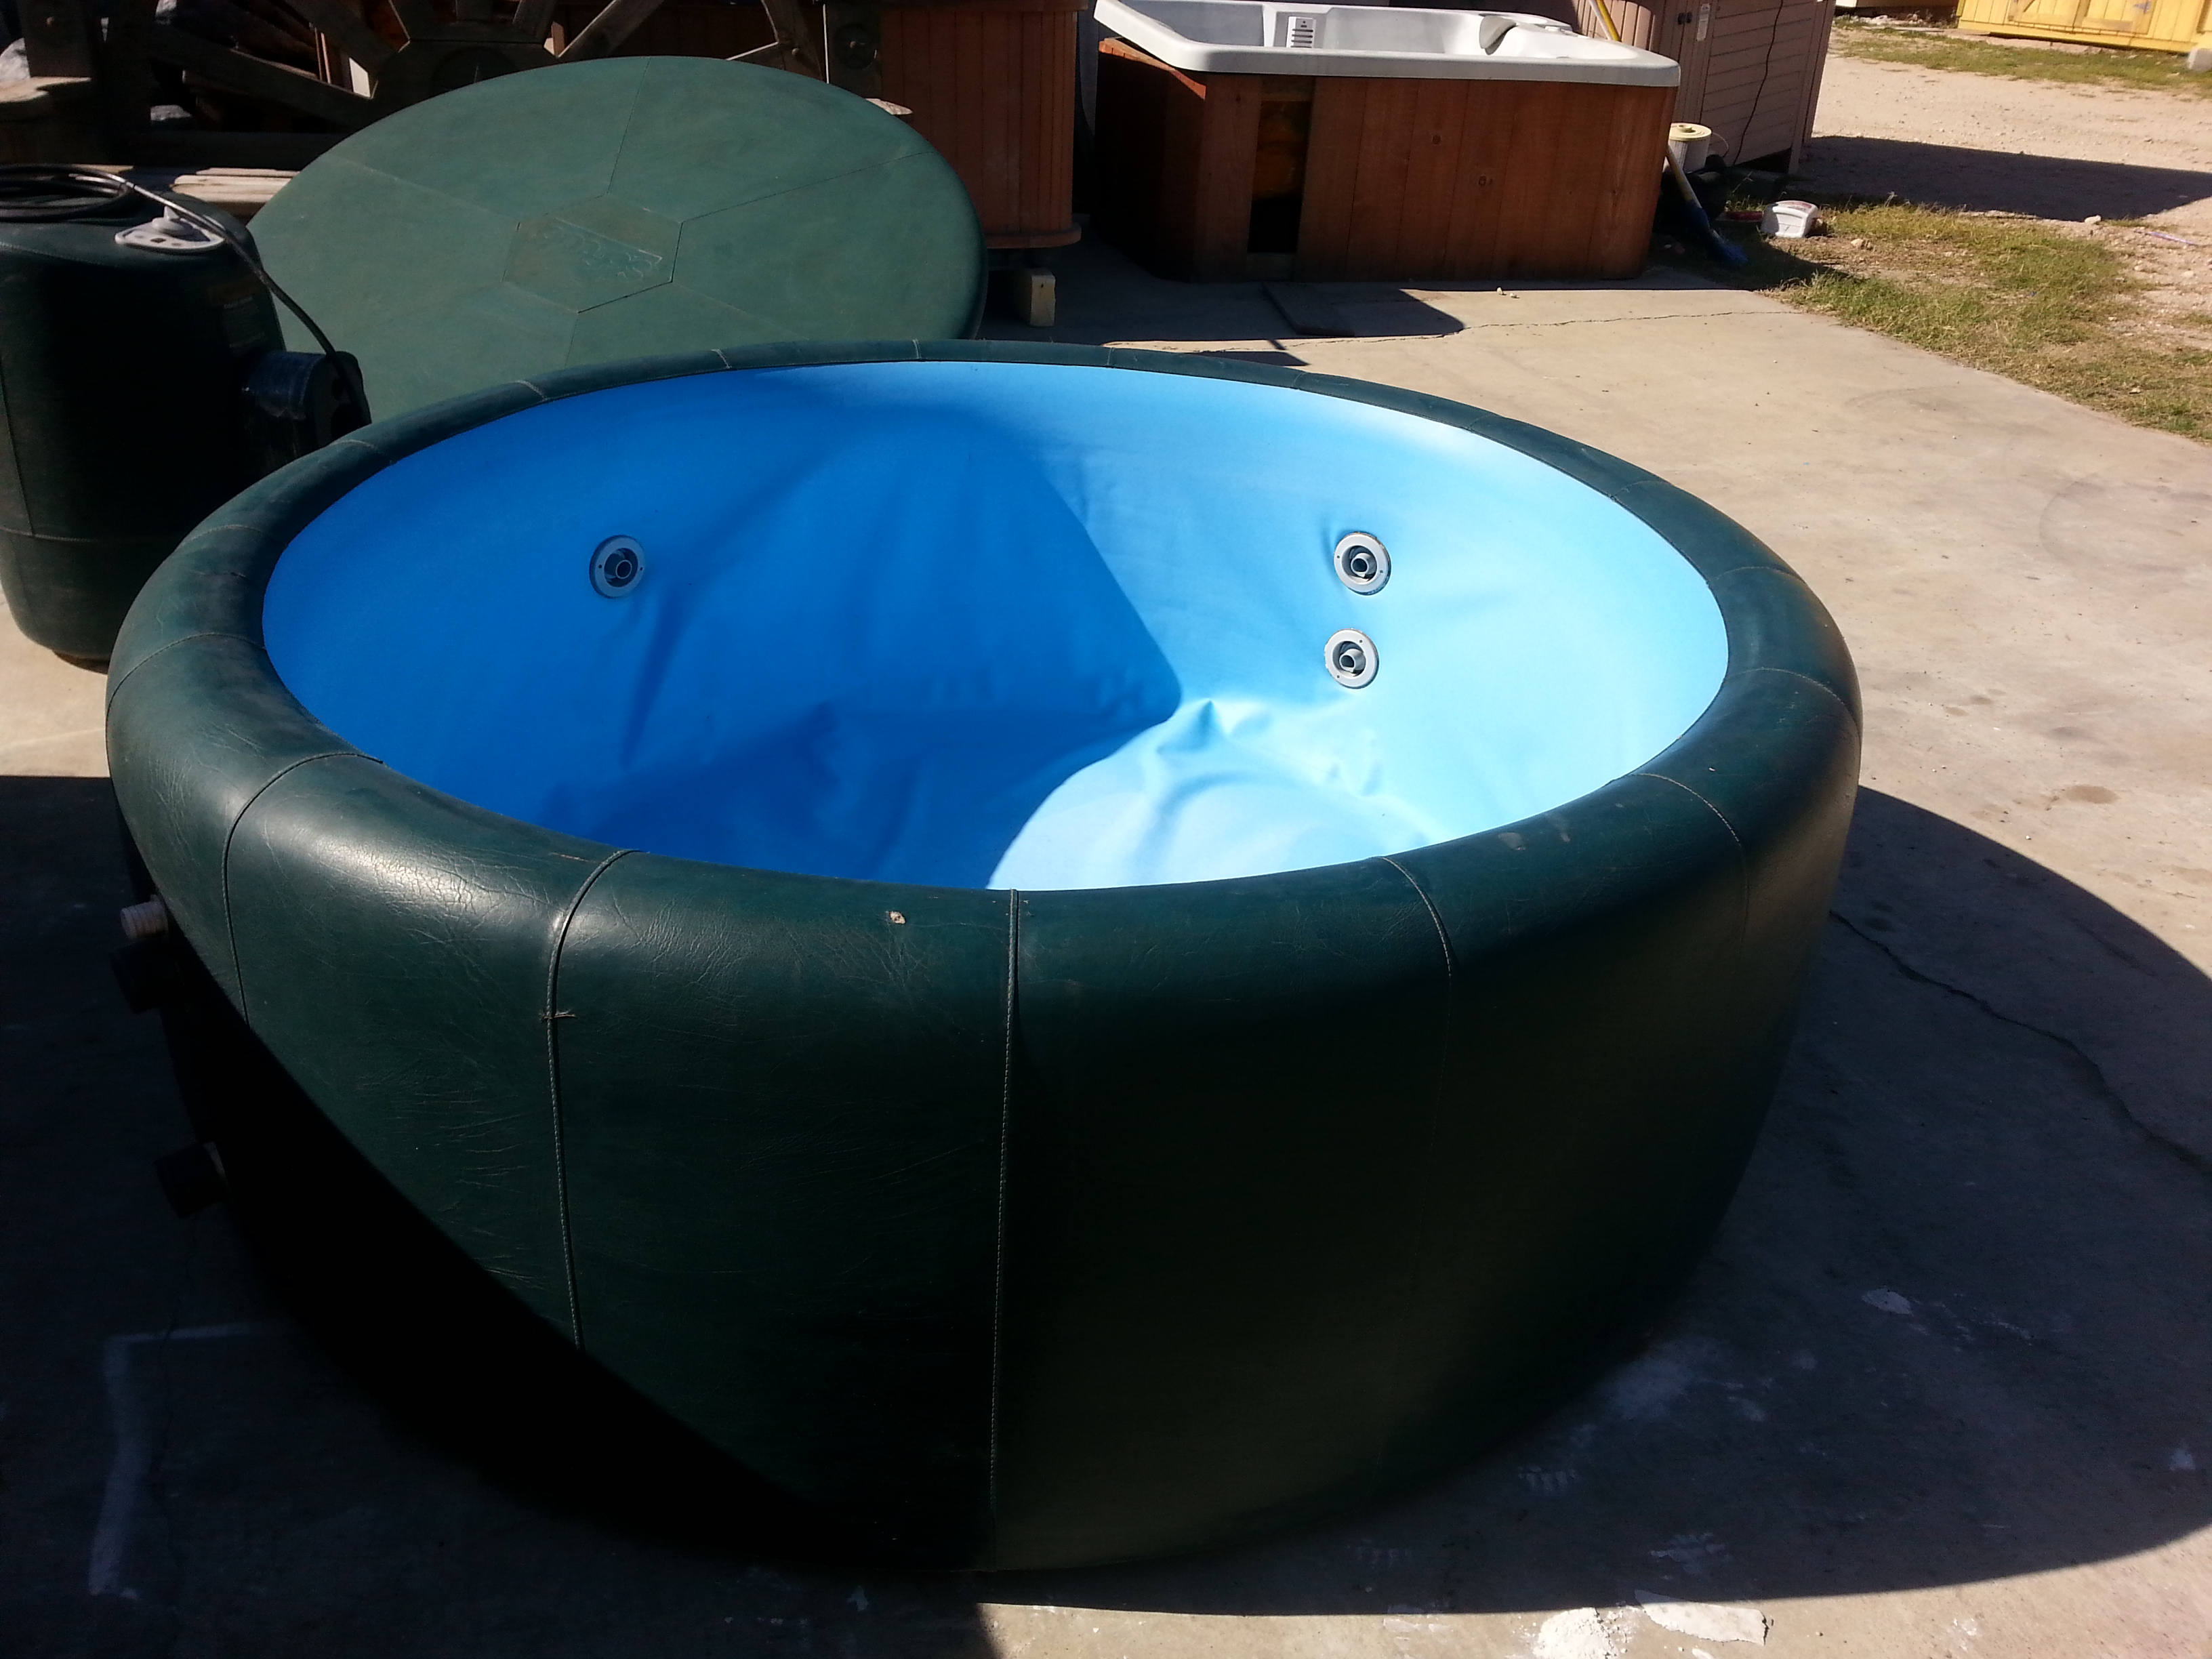 company tubs gallery norfolk hand the testimonials spaform and manual tub second hot pool user used